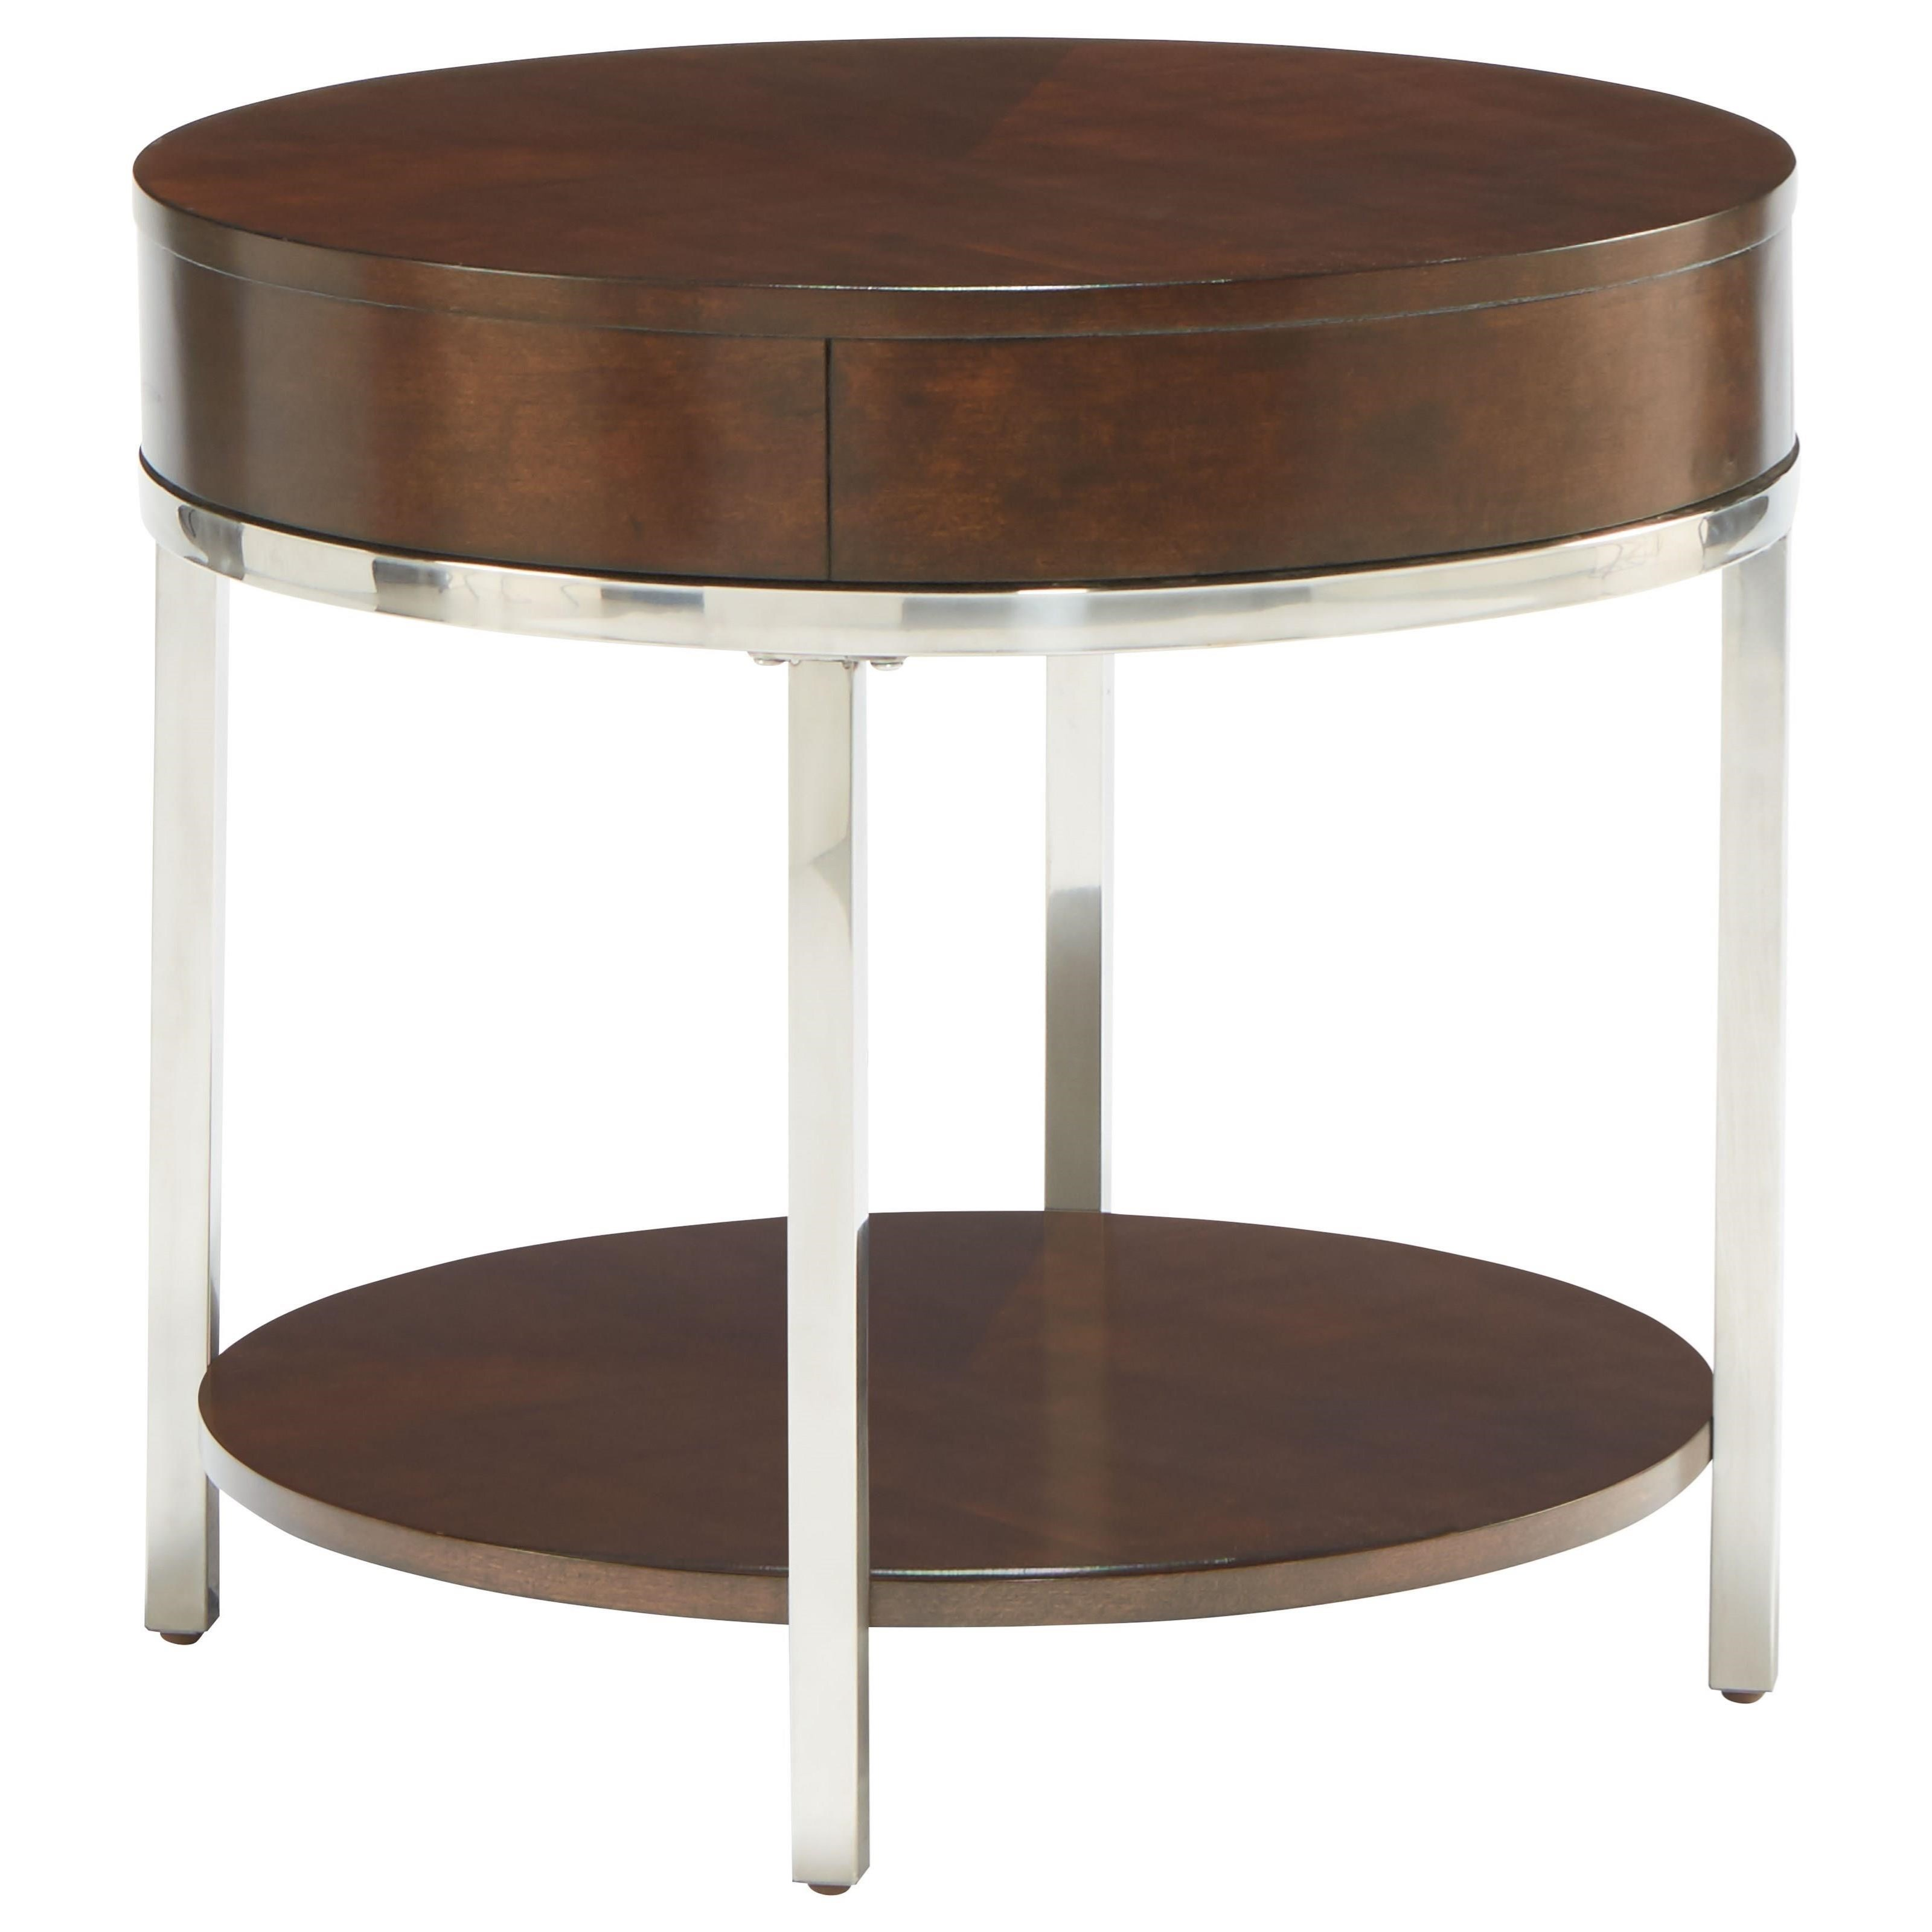 Mira End Table by Standard Furniture at Rooms for Less